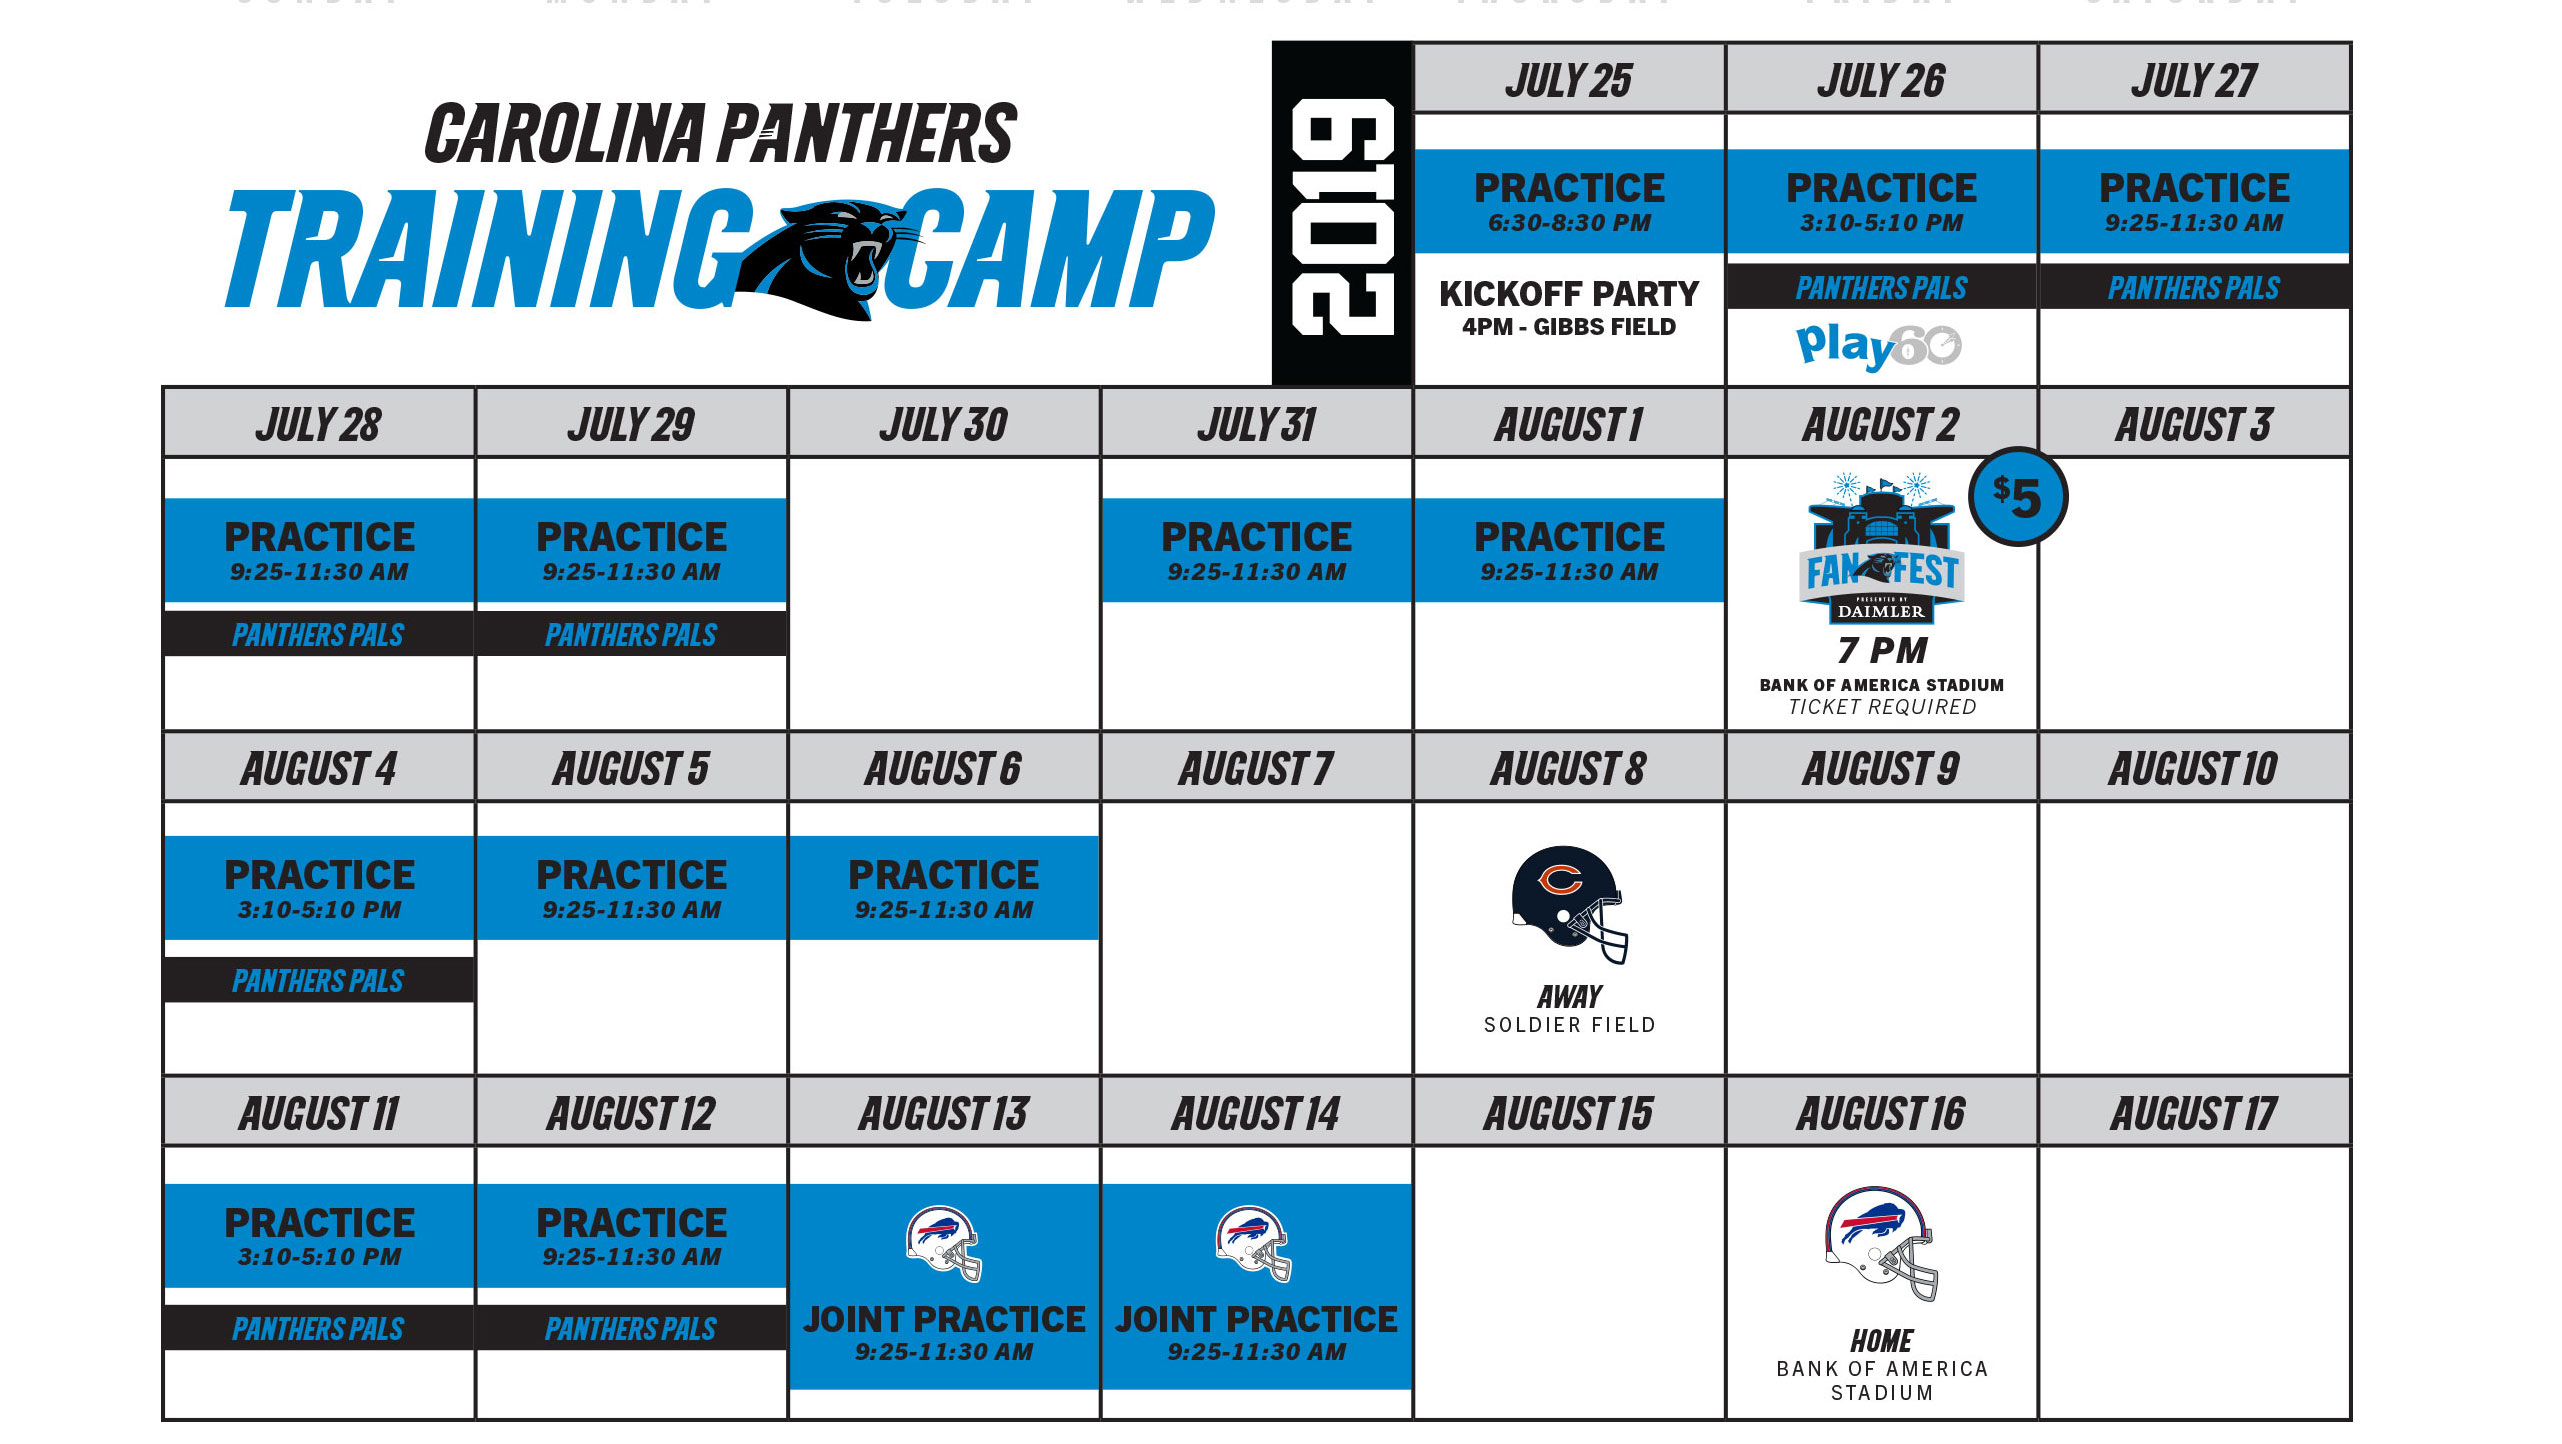 picture regarding Buffalo Bills Printable Schedule named Panthers Exercising Camp Carolina Panthers -